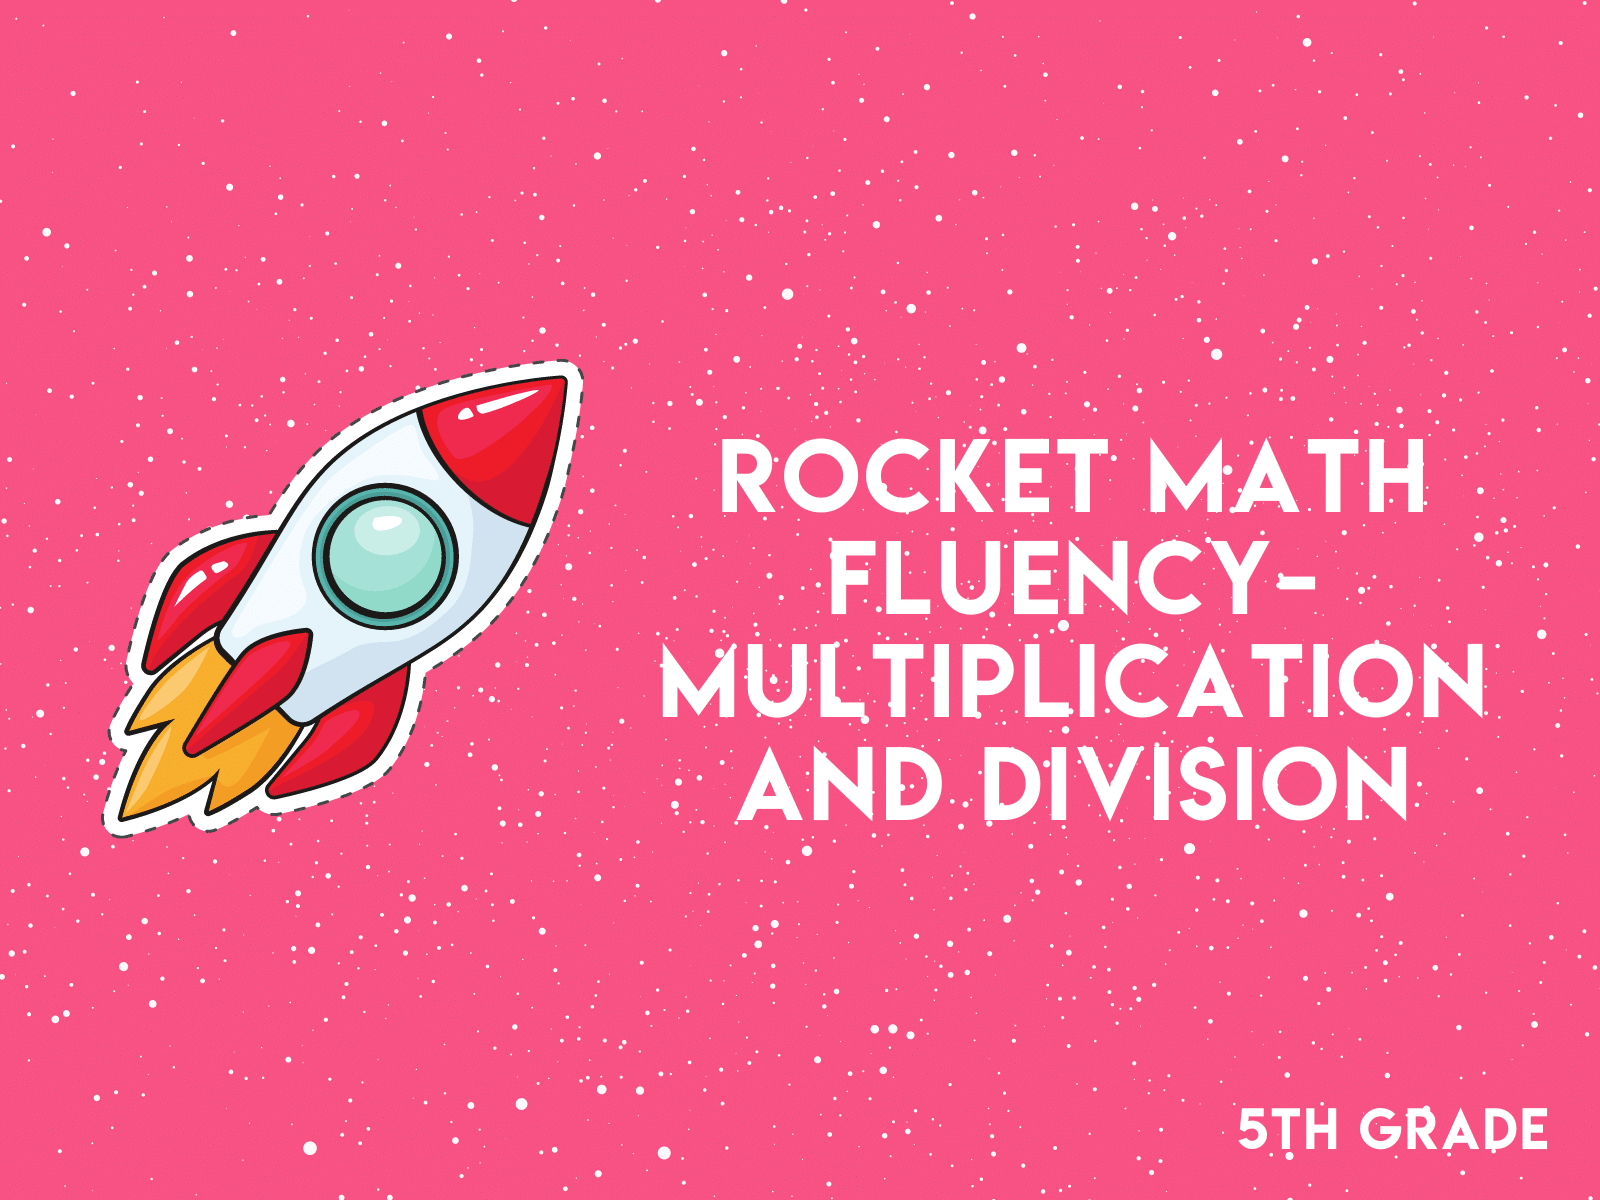 Rocket math facts challenge for fifth grade multiplication and division.